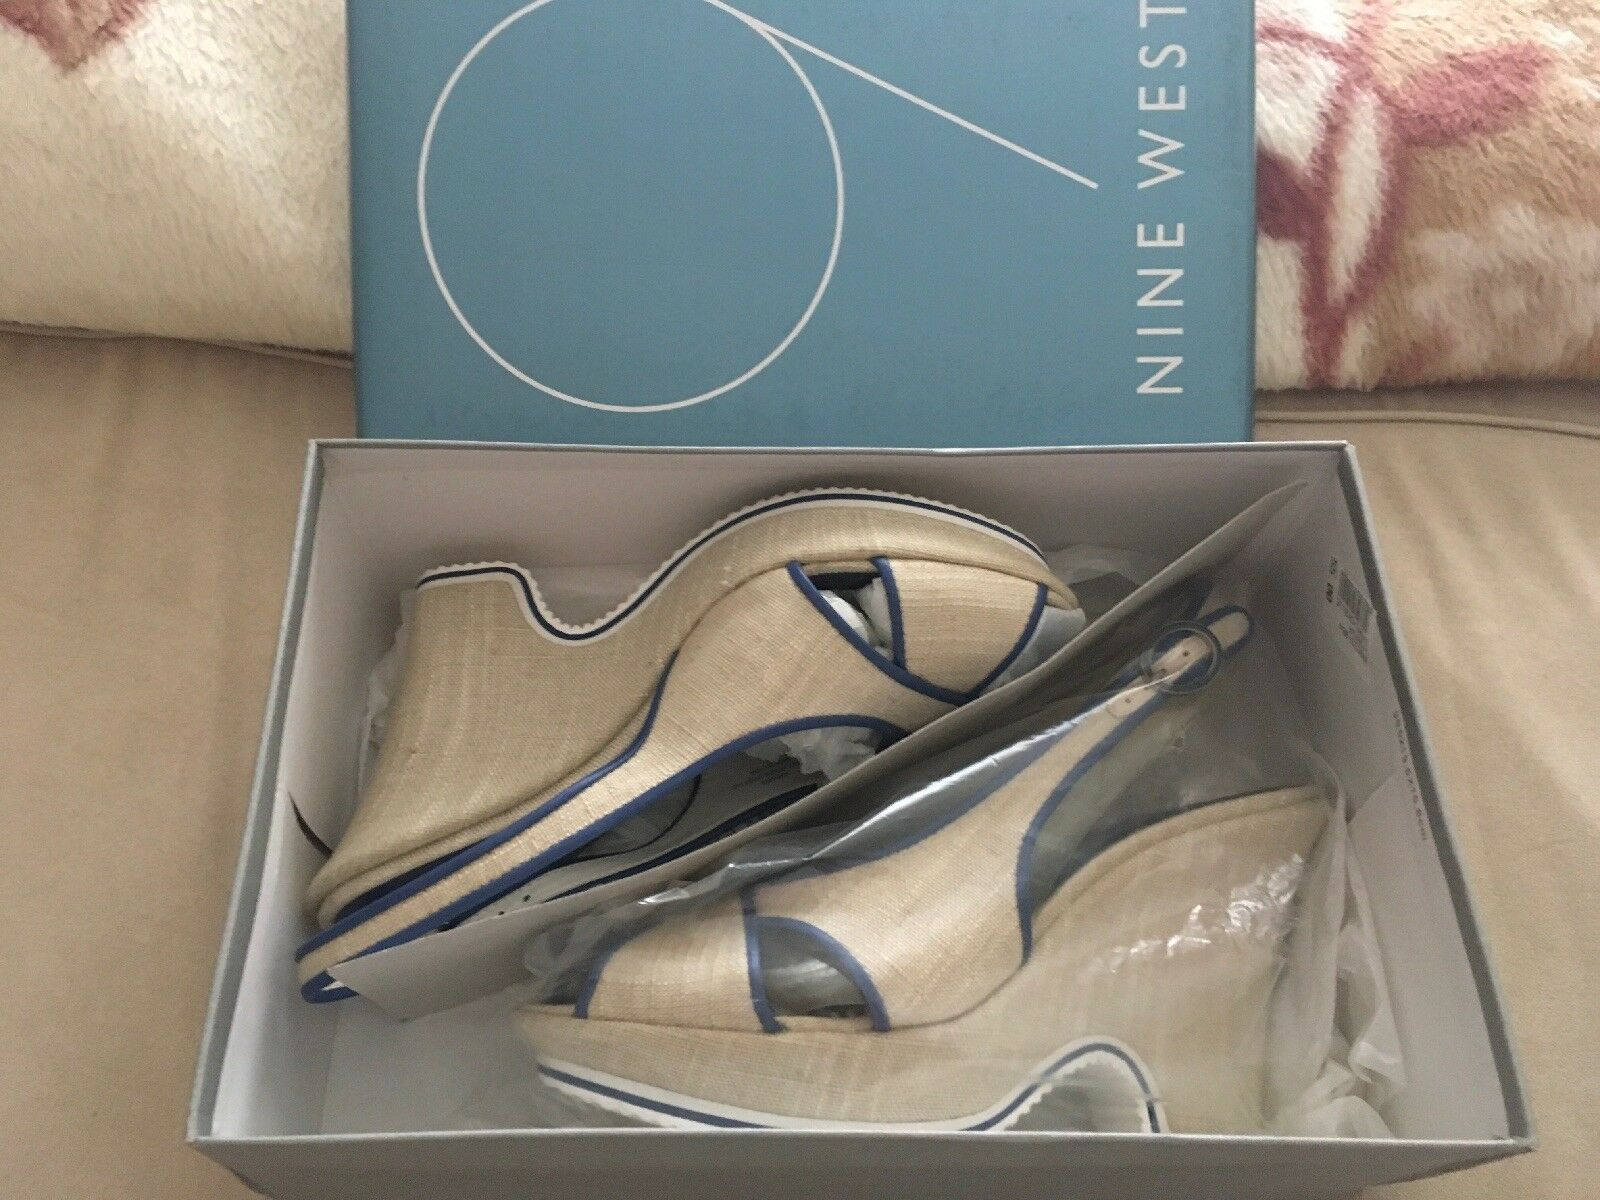 NINE WEST NWDARVA Gorgeous Canvas  Sandales UK6(US8) Schuhes Heels Ivory/Blau Größe UK6(US8) Sandales 897617